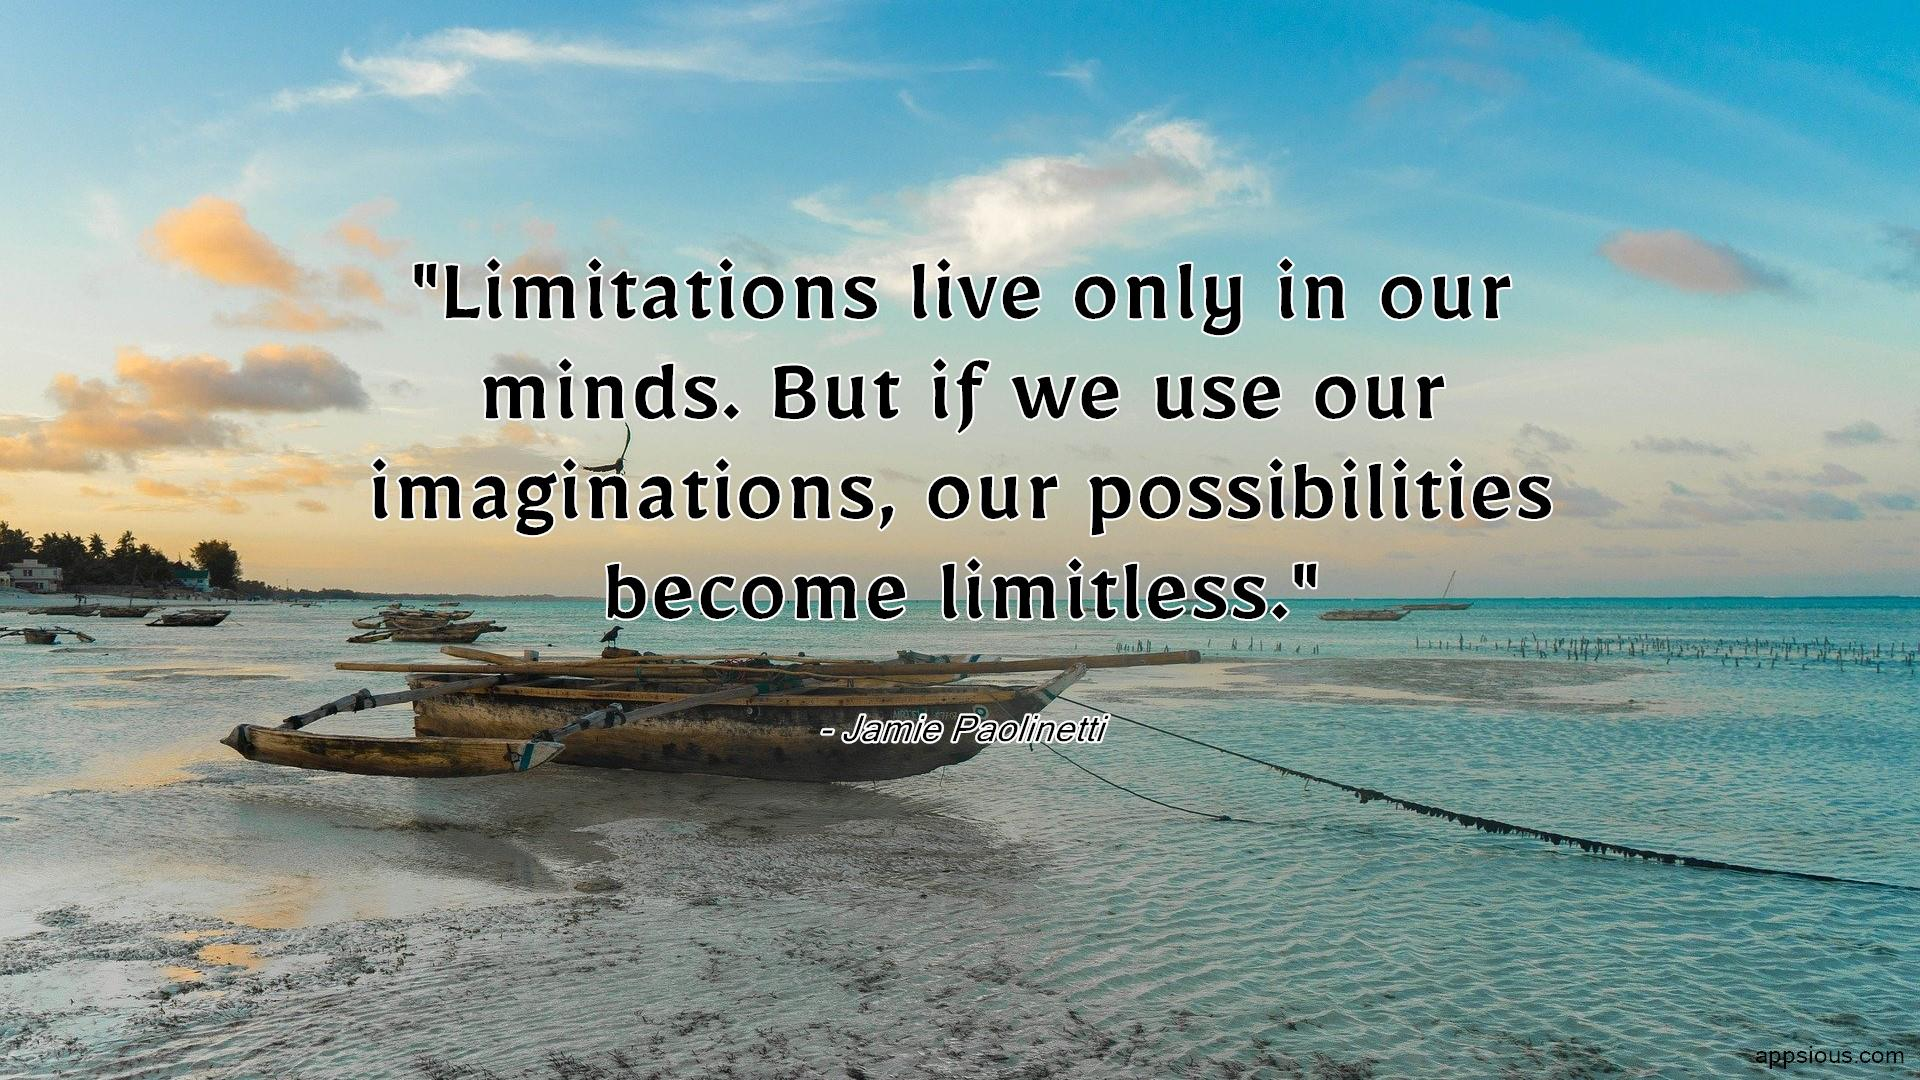 Limitations live only in our minds.  But if we use our imaginations, our possibilities become limitless.